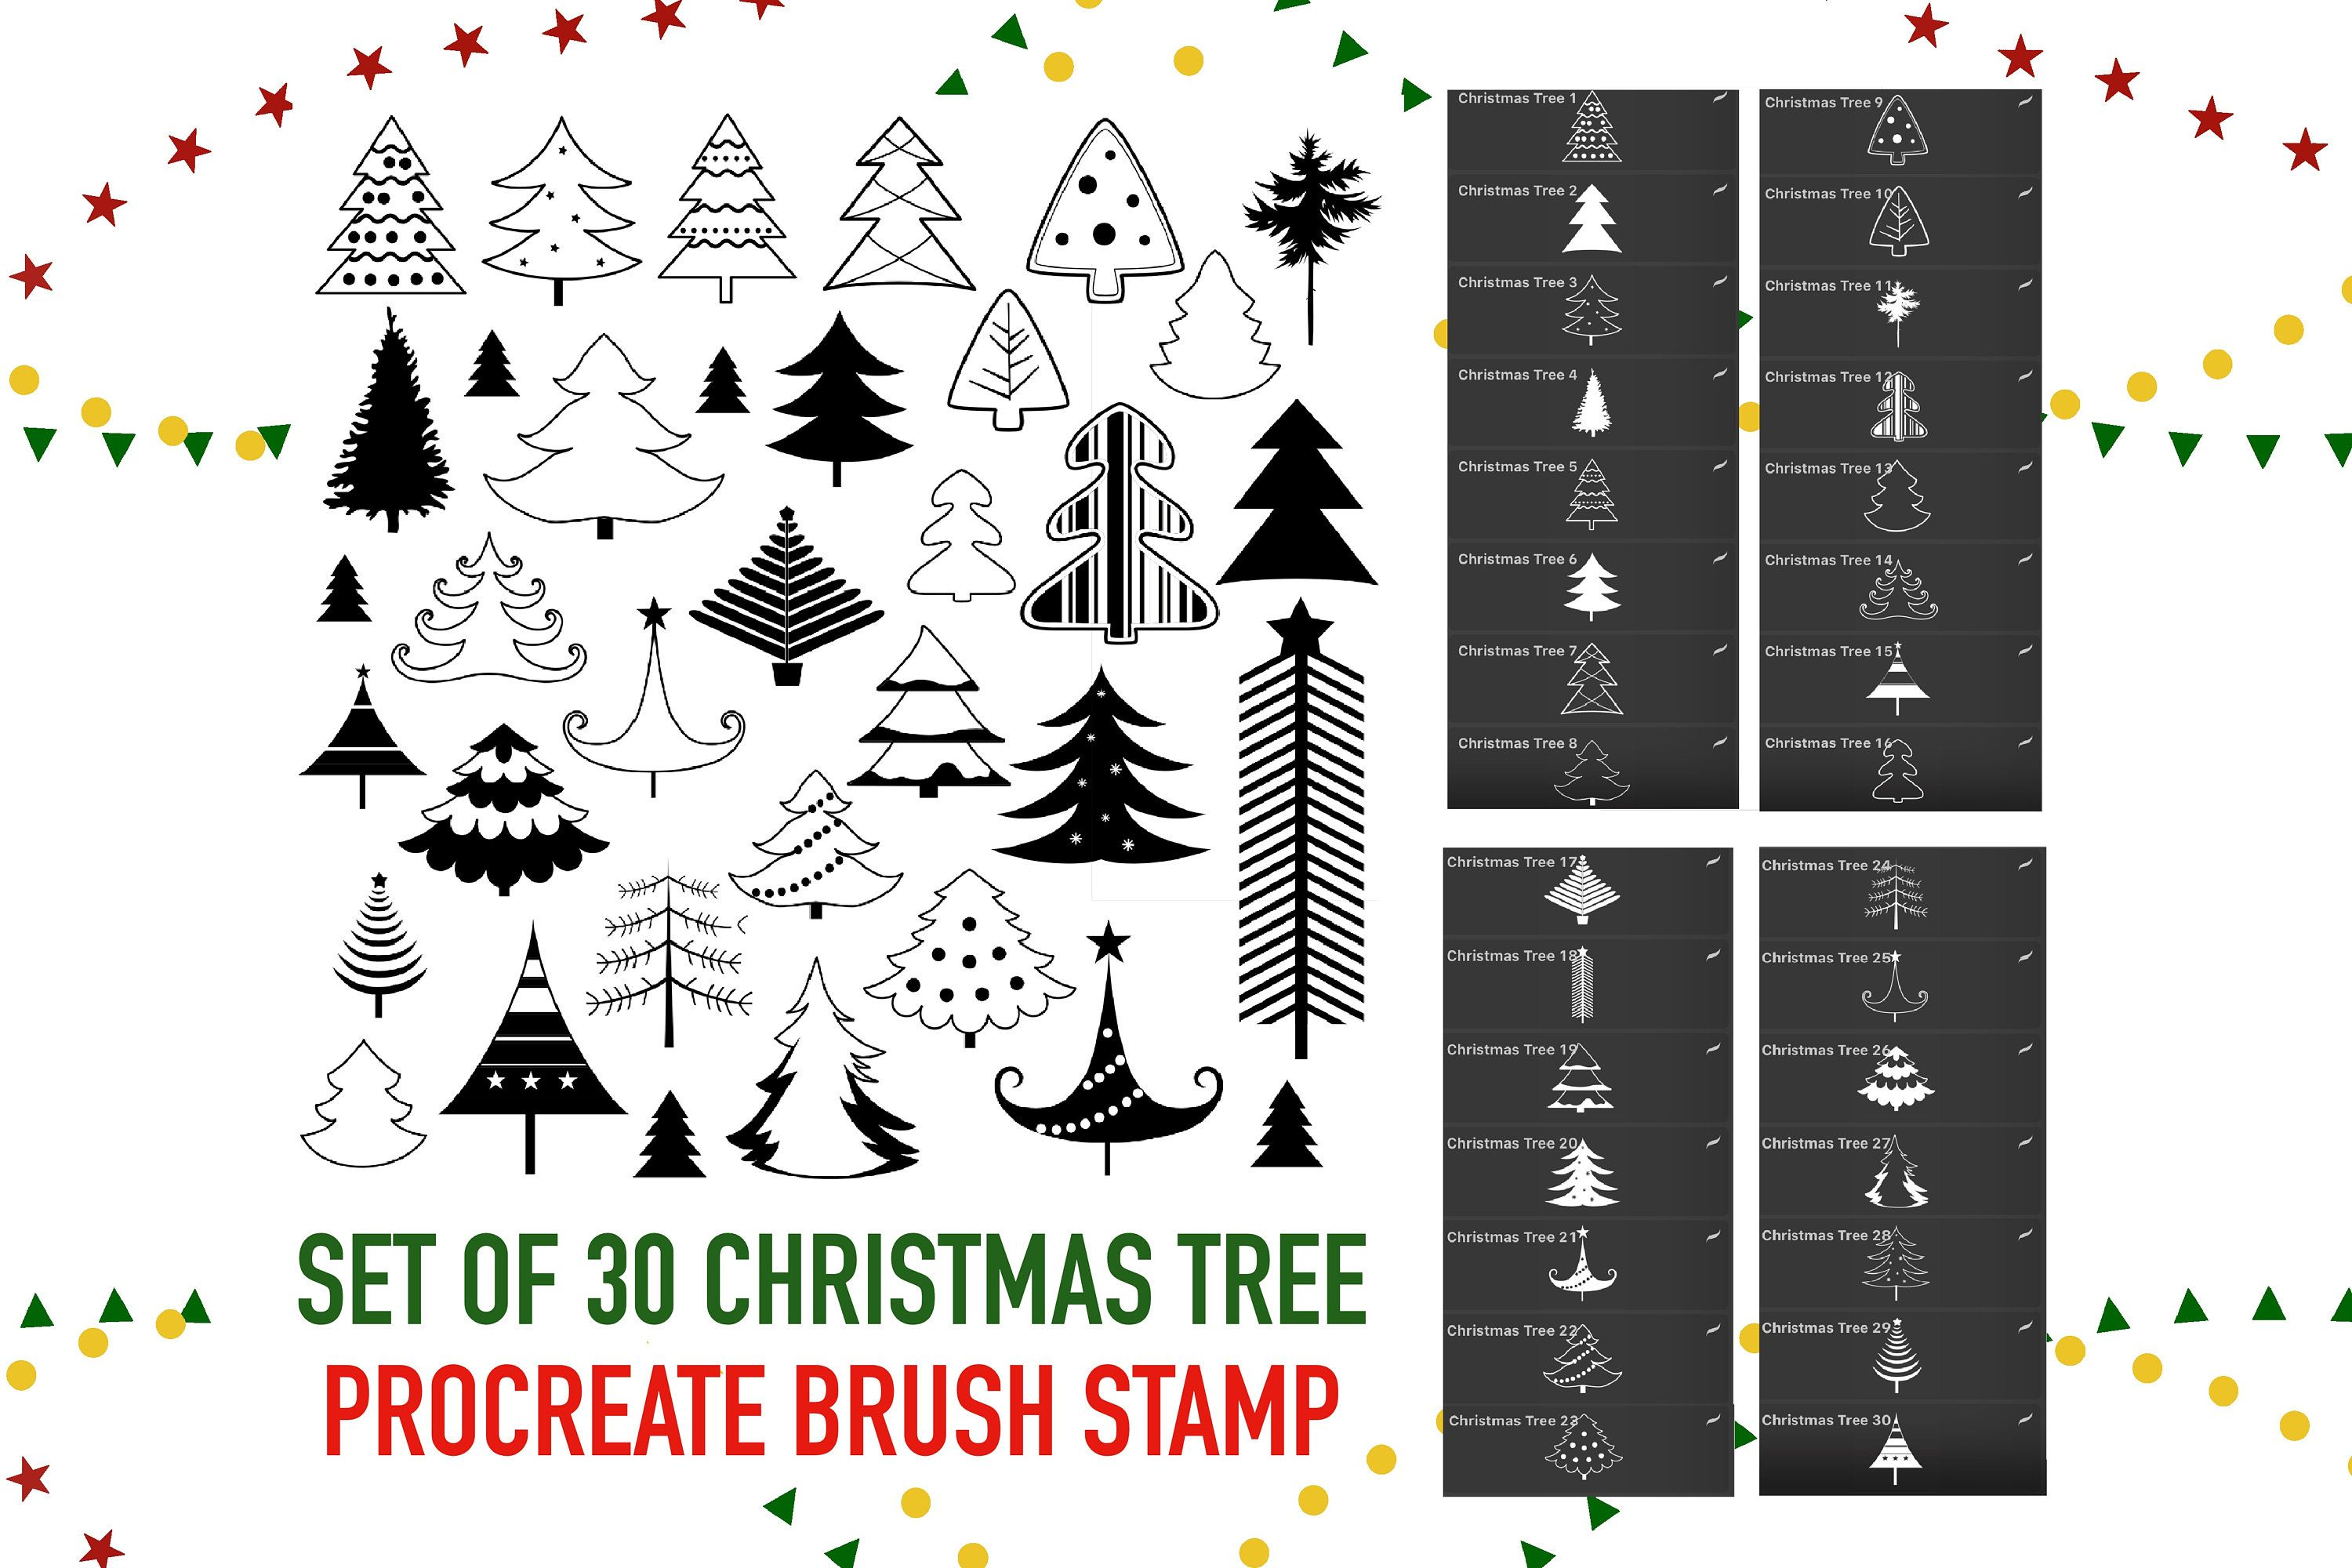 Christmas Tree Stamps Brushes For Procreate Digital Brush Etsy In 2020 Tree Stamp Procreate App Alphabet Illustration